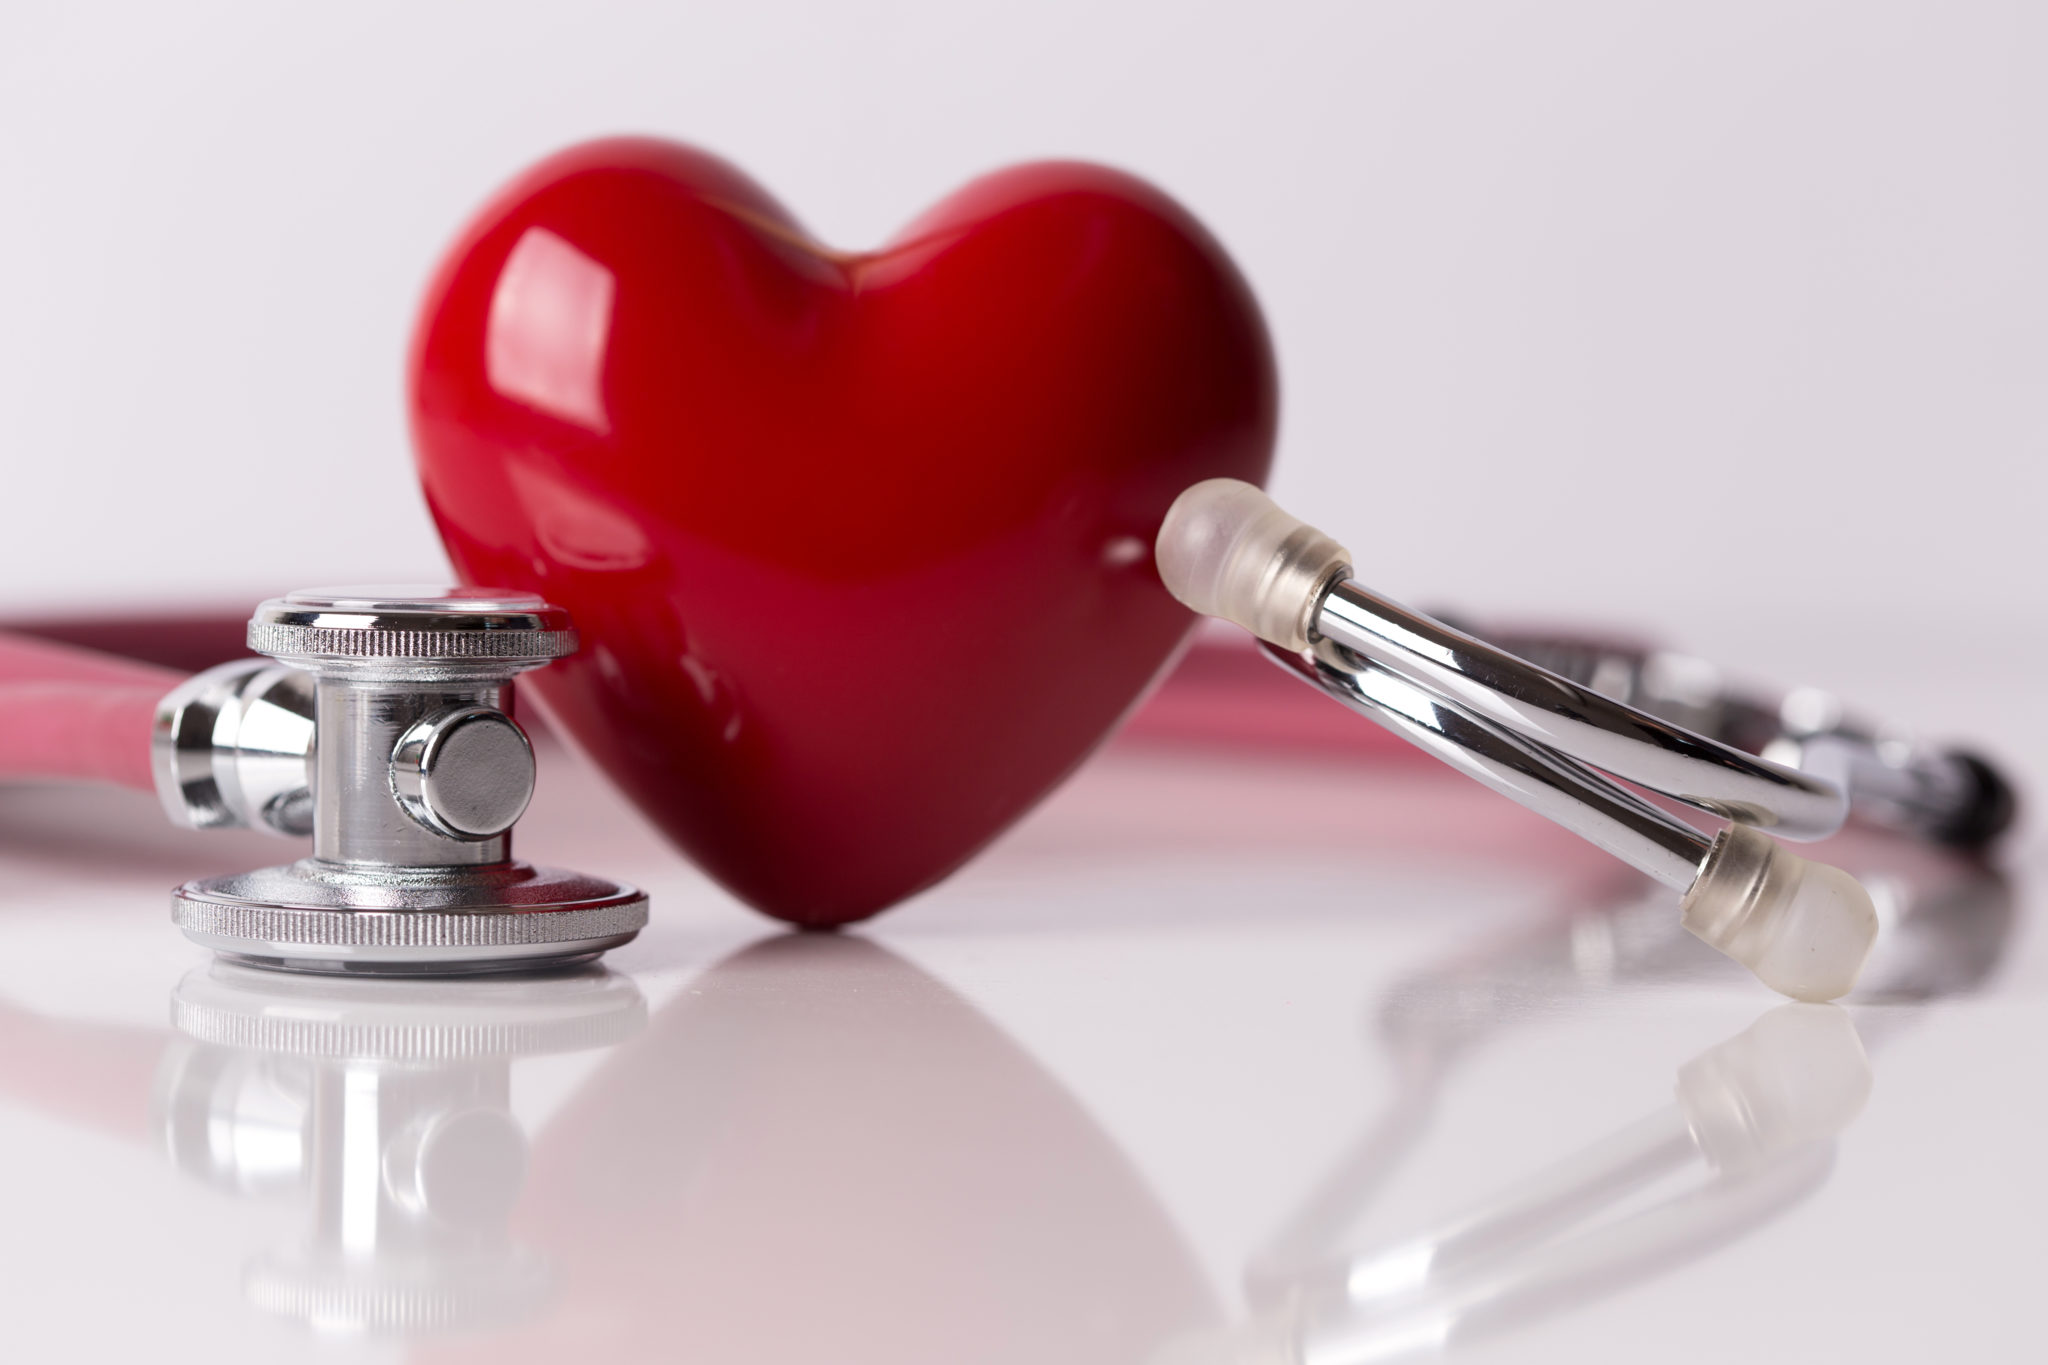 Stethoscope beside a ceramic heart